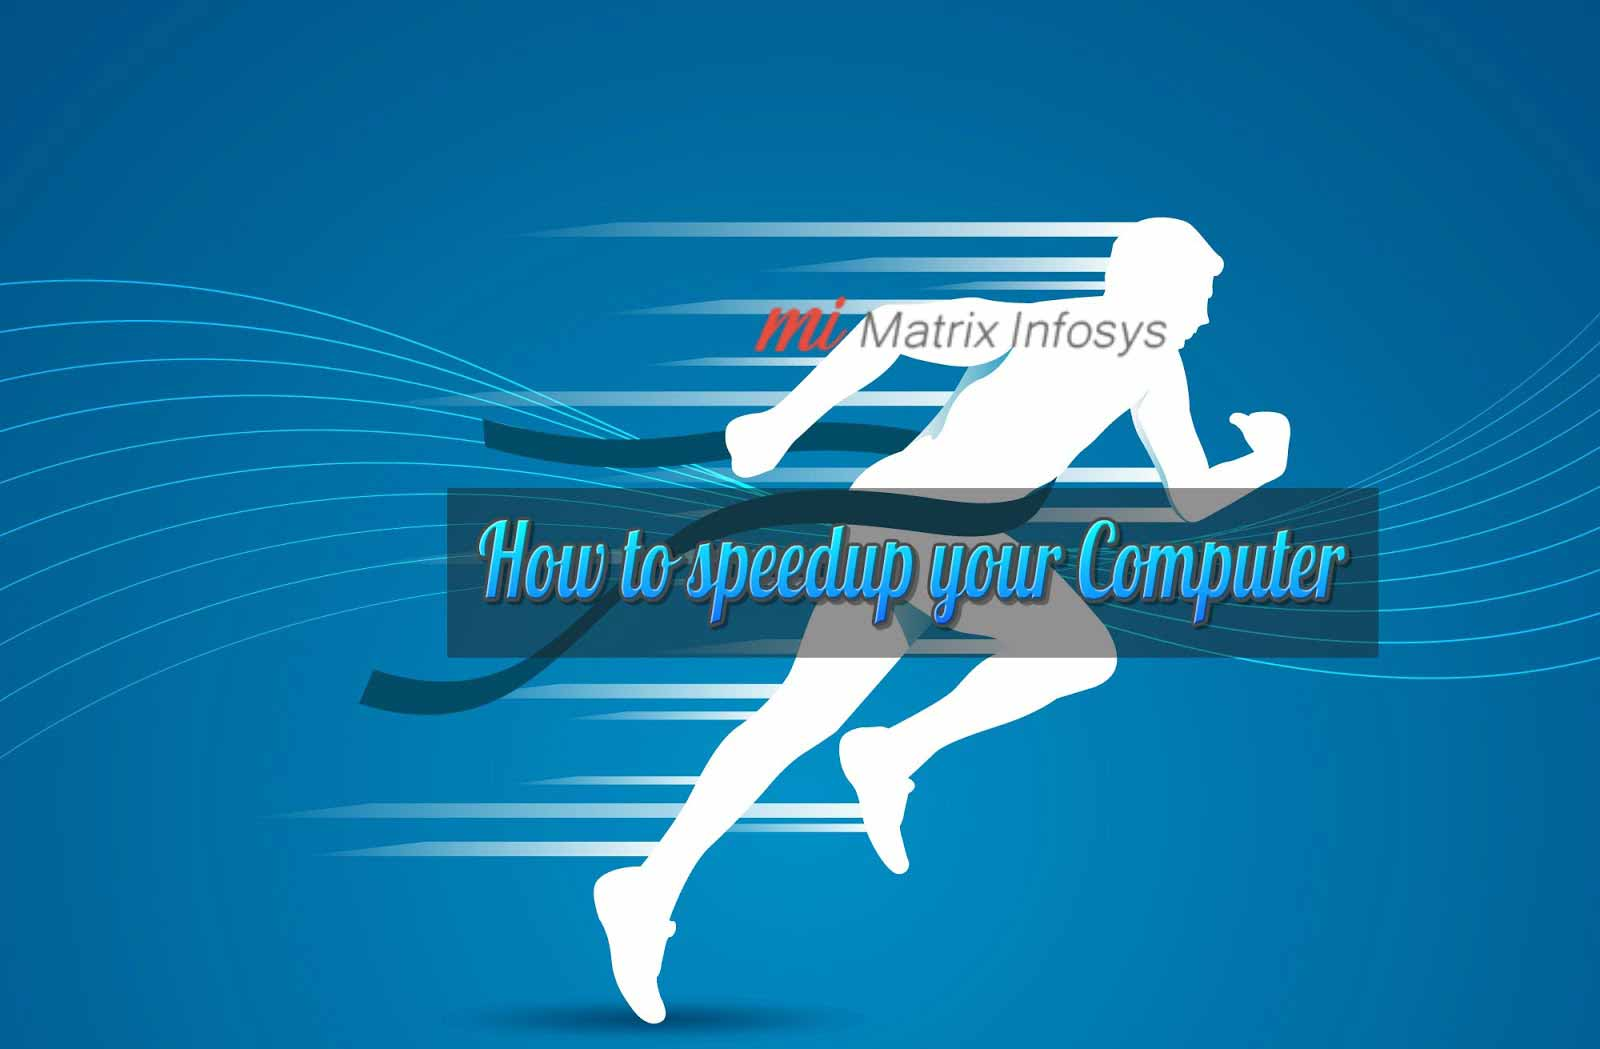 WAYS TO SPEED UP YOUR COMPUTER